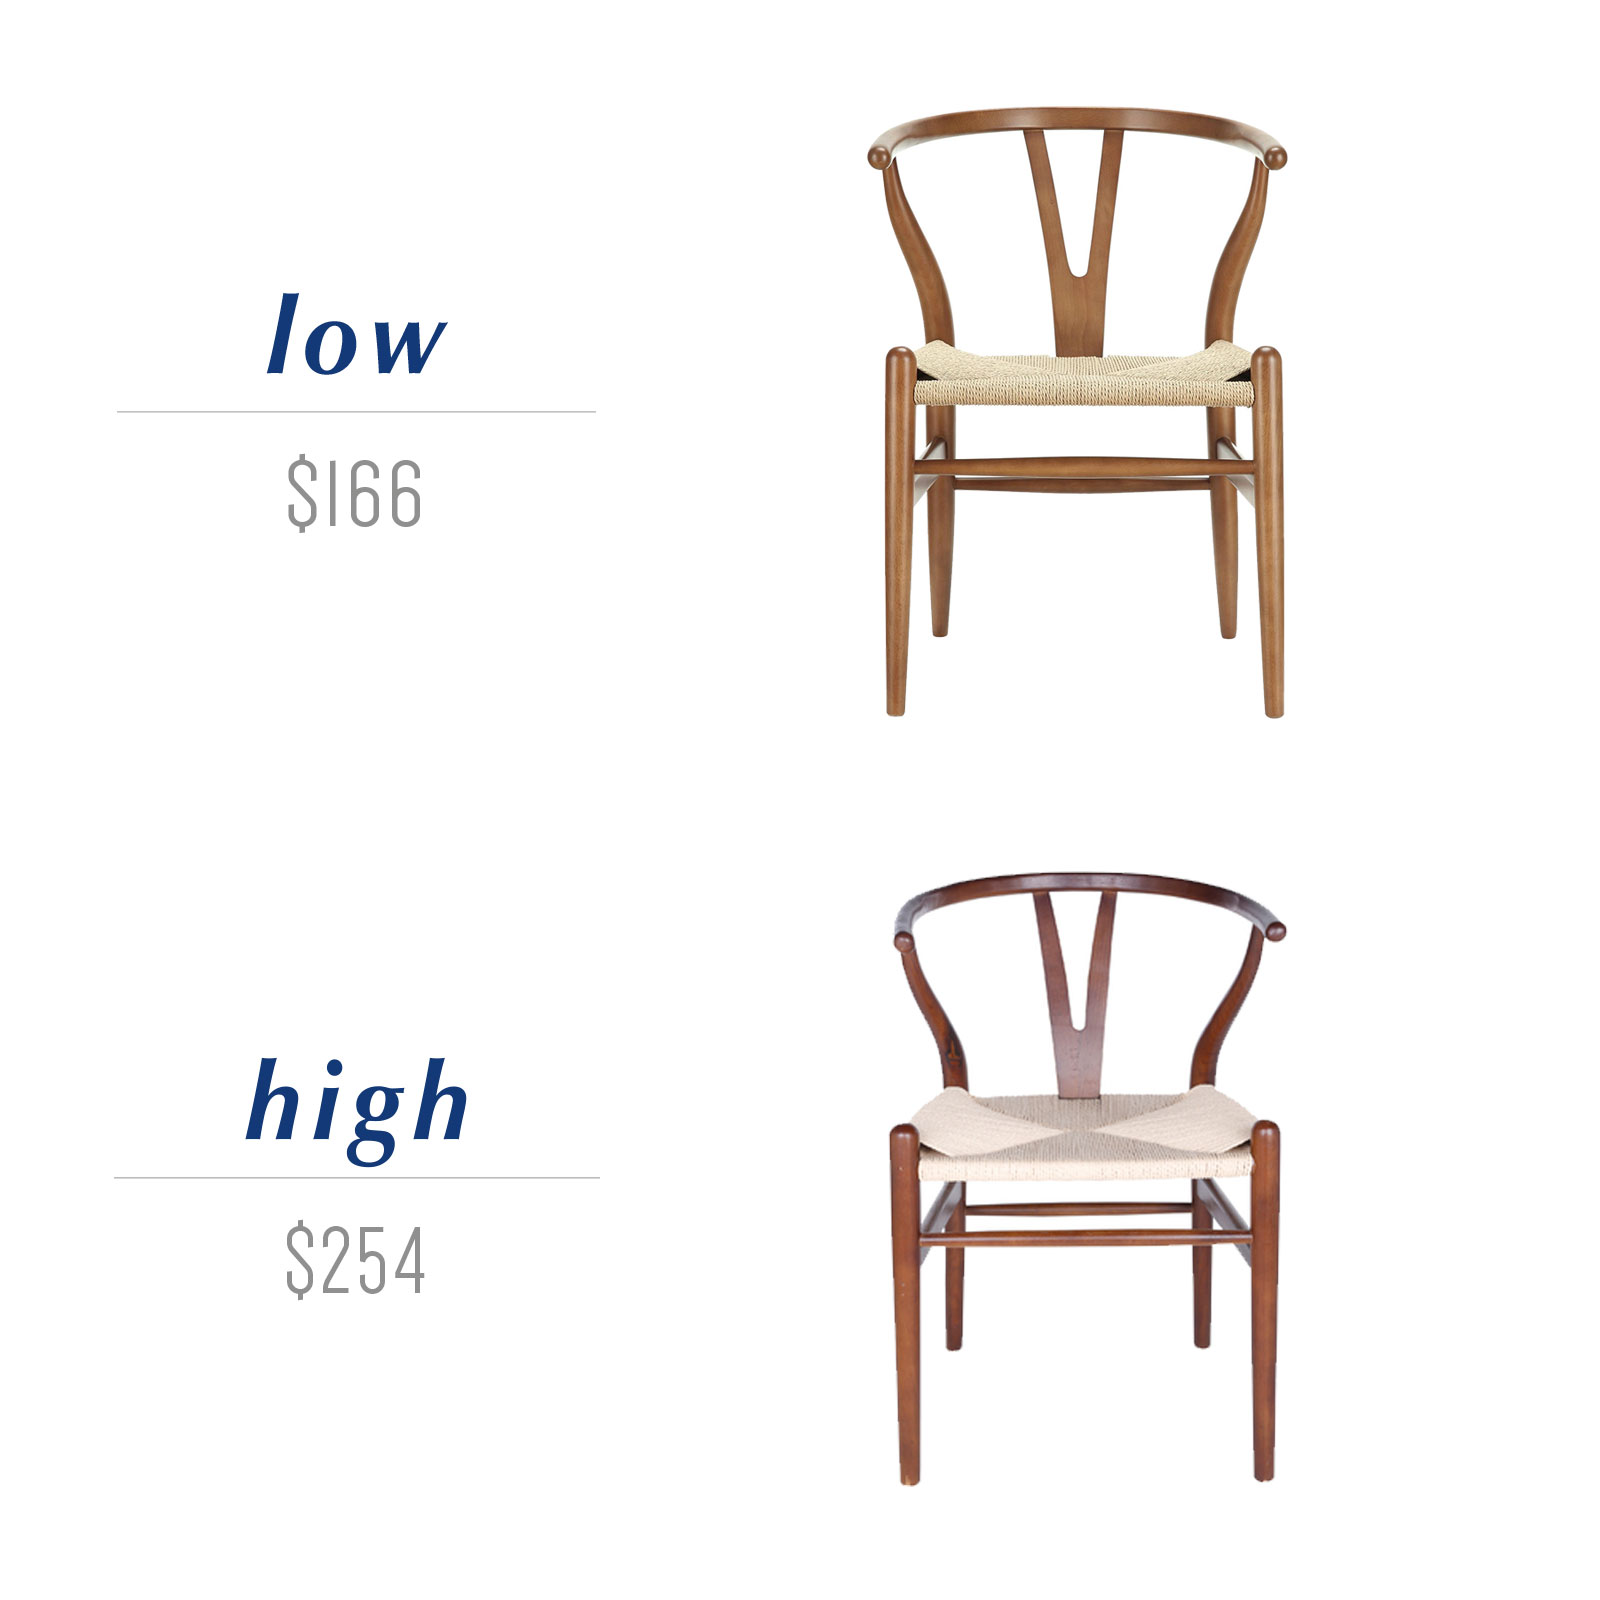 Get the look for less or decide to splurge! Come see the budget-friendly and spend-worthy pieces of furniture in this blog post including the high/low sources for these wishbone style dining chairs.